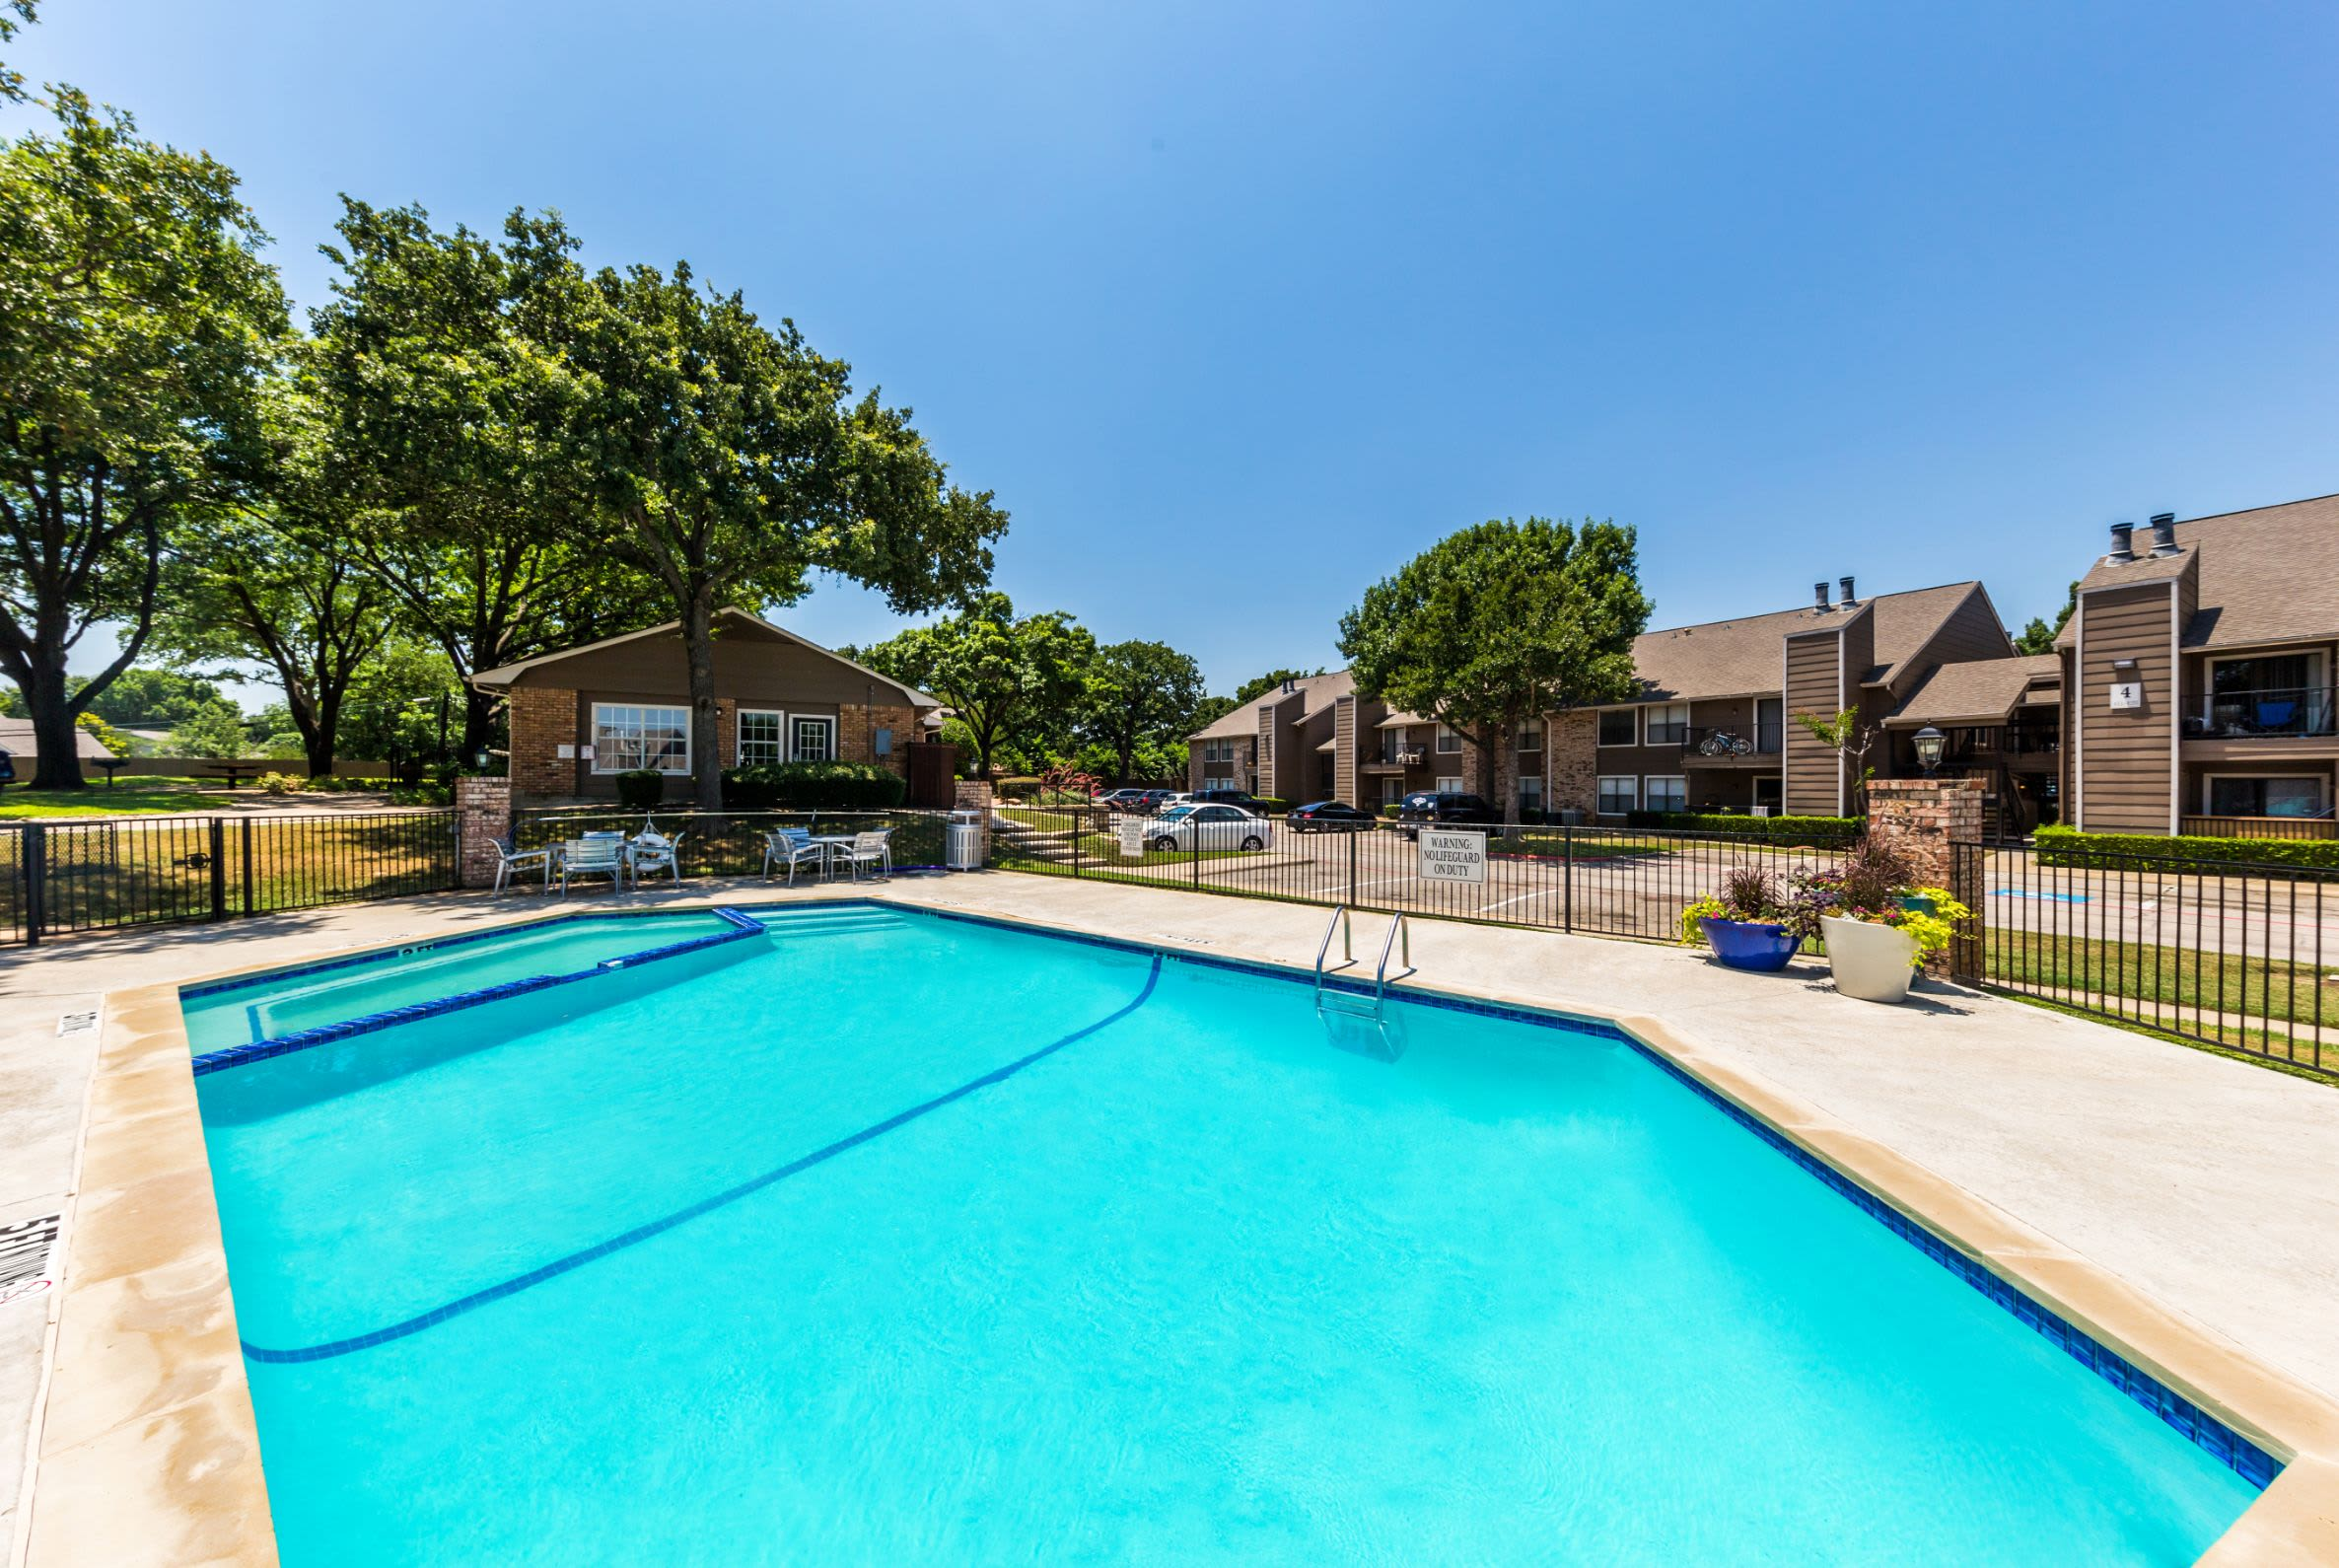 Bright pool at The Park at Flower Mound in Flower Mound, Texas